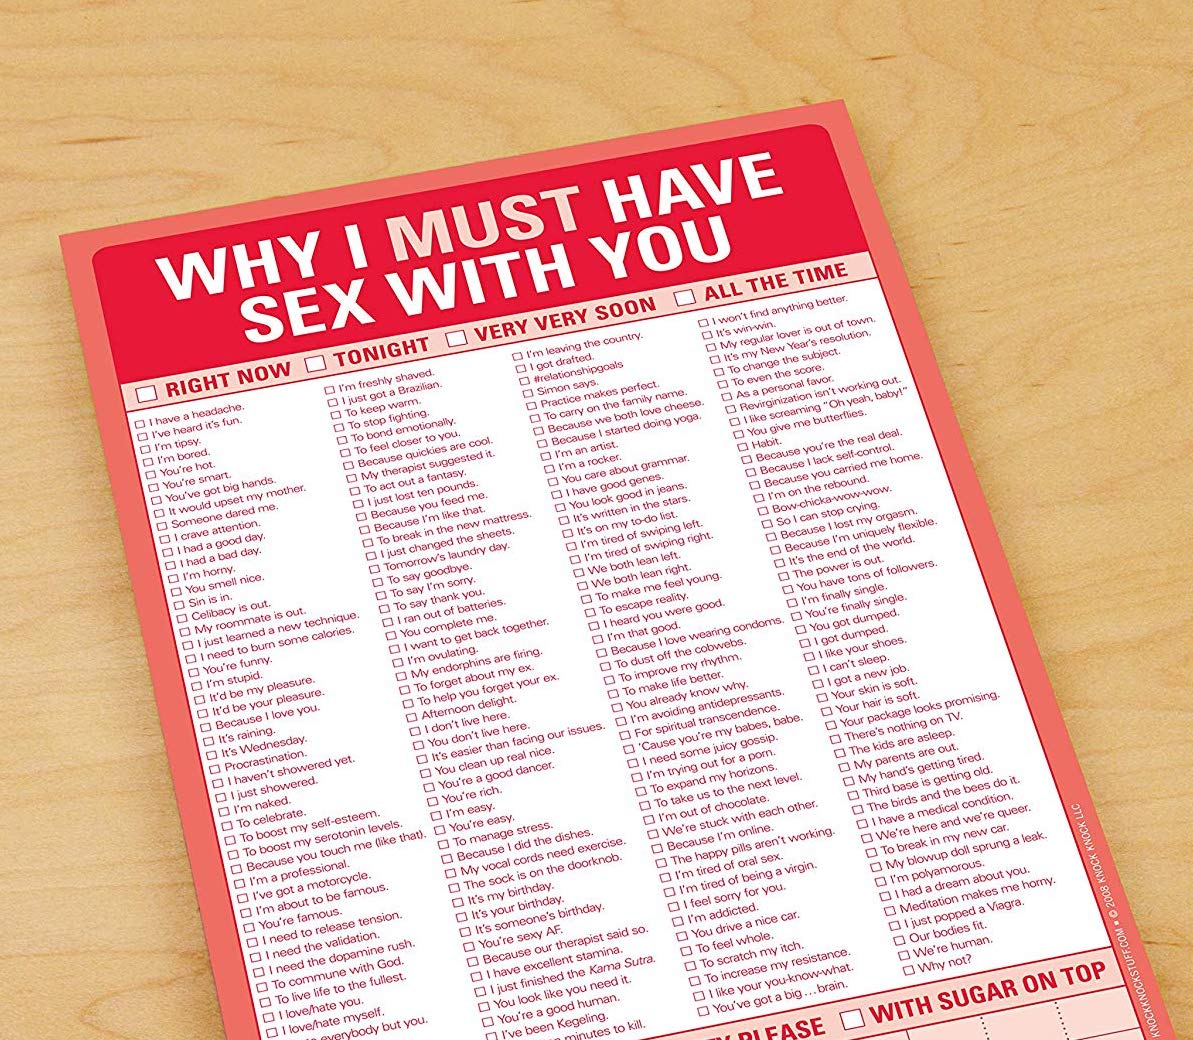 Why I Must Have Sex With You Checklist 1